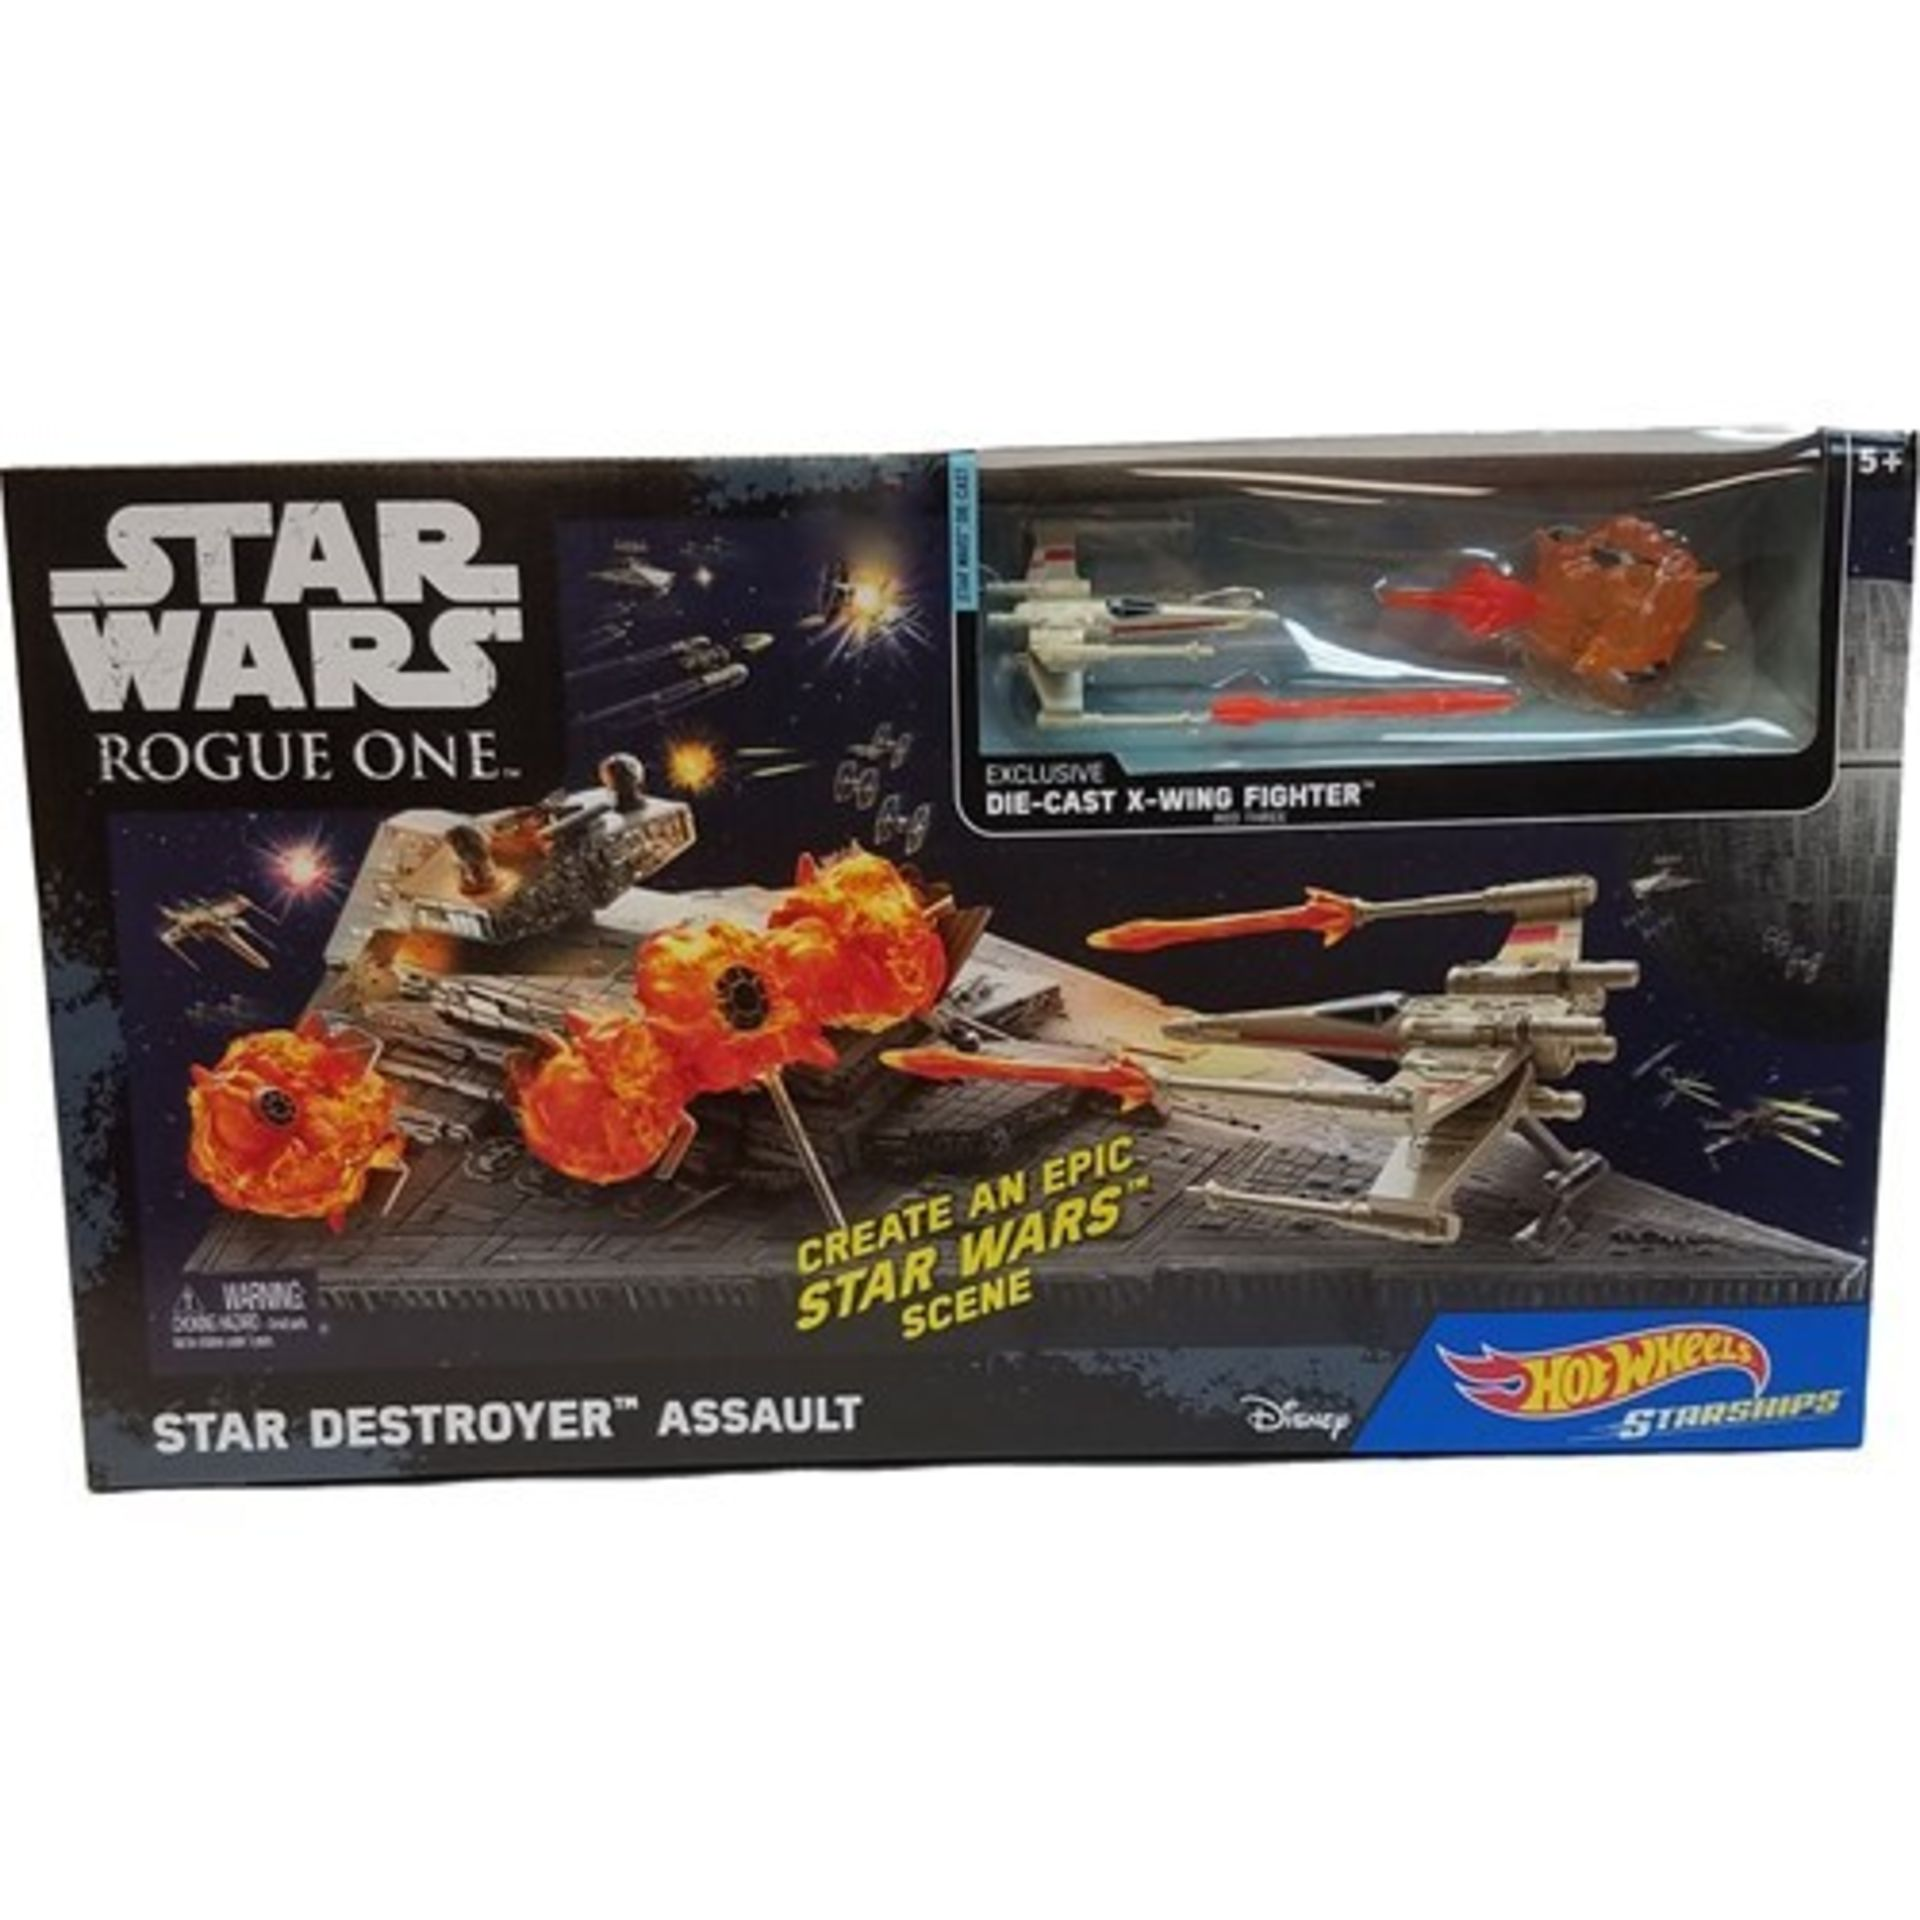 Lot 12528 - V Brand New Hot Wheels Star Wars Rogue One Star Destroyer Assault - 20 Pieces Included - Includes